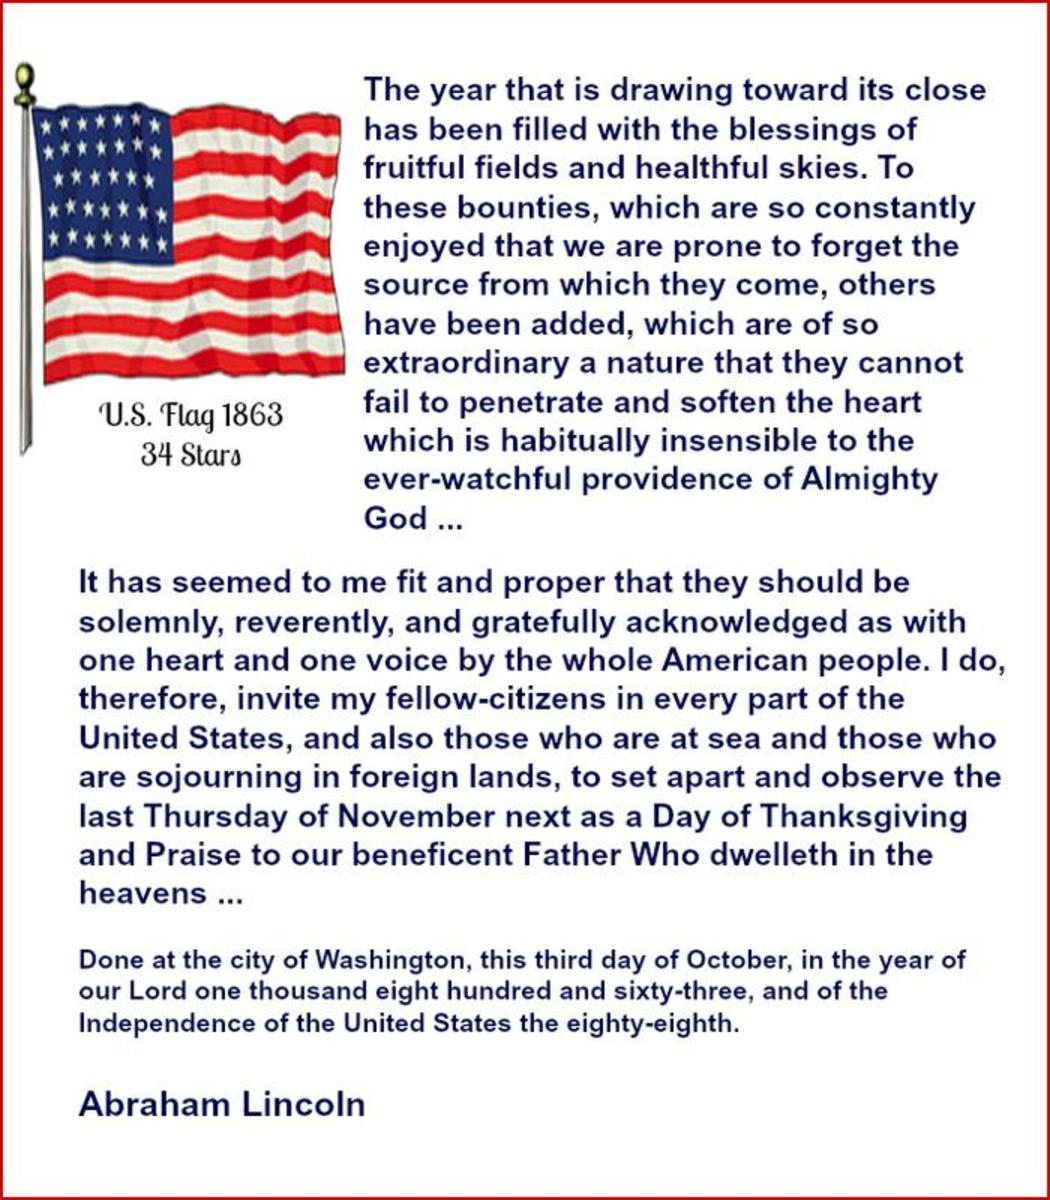 Thanksgiving Proclamation by Abraham Lincoln in 1863